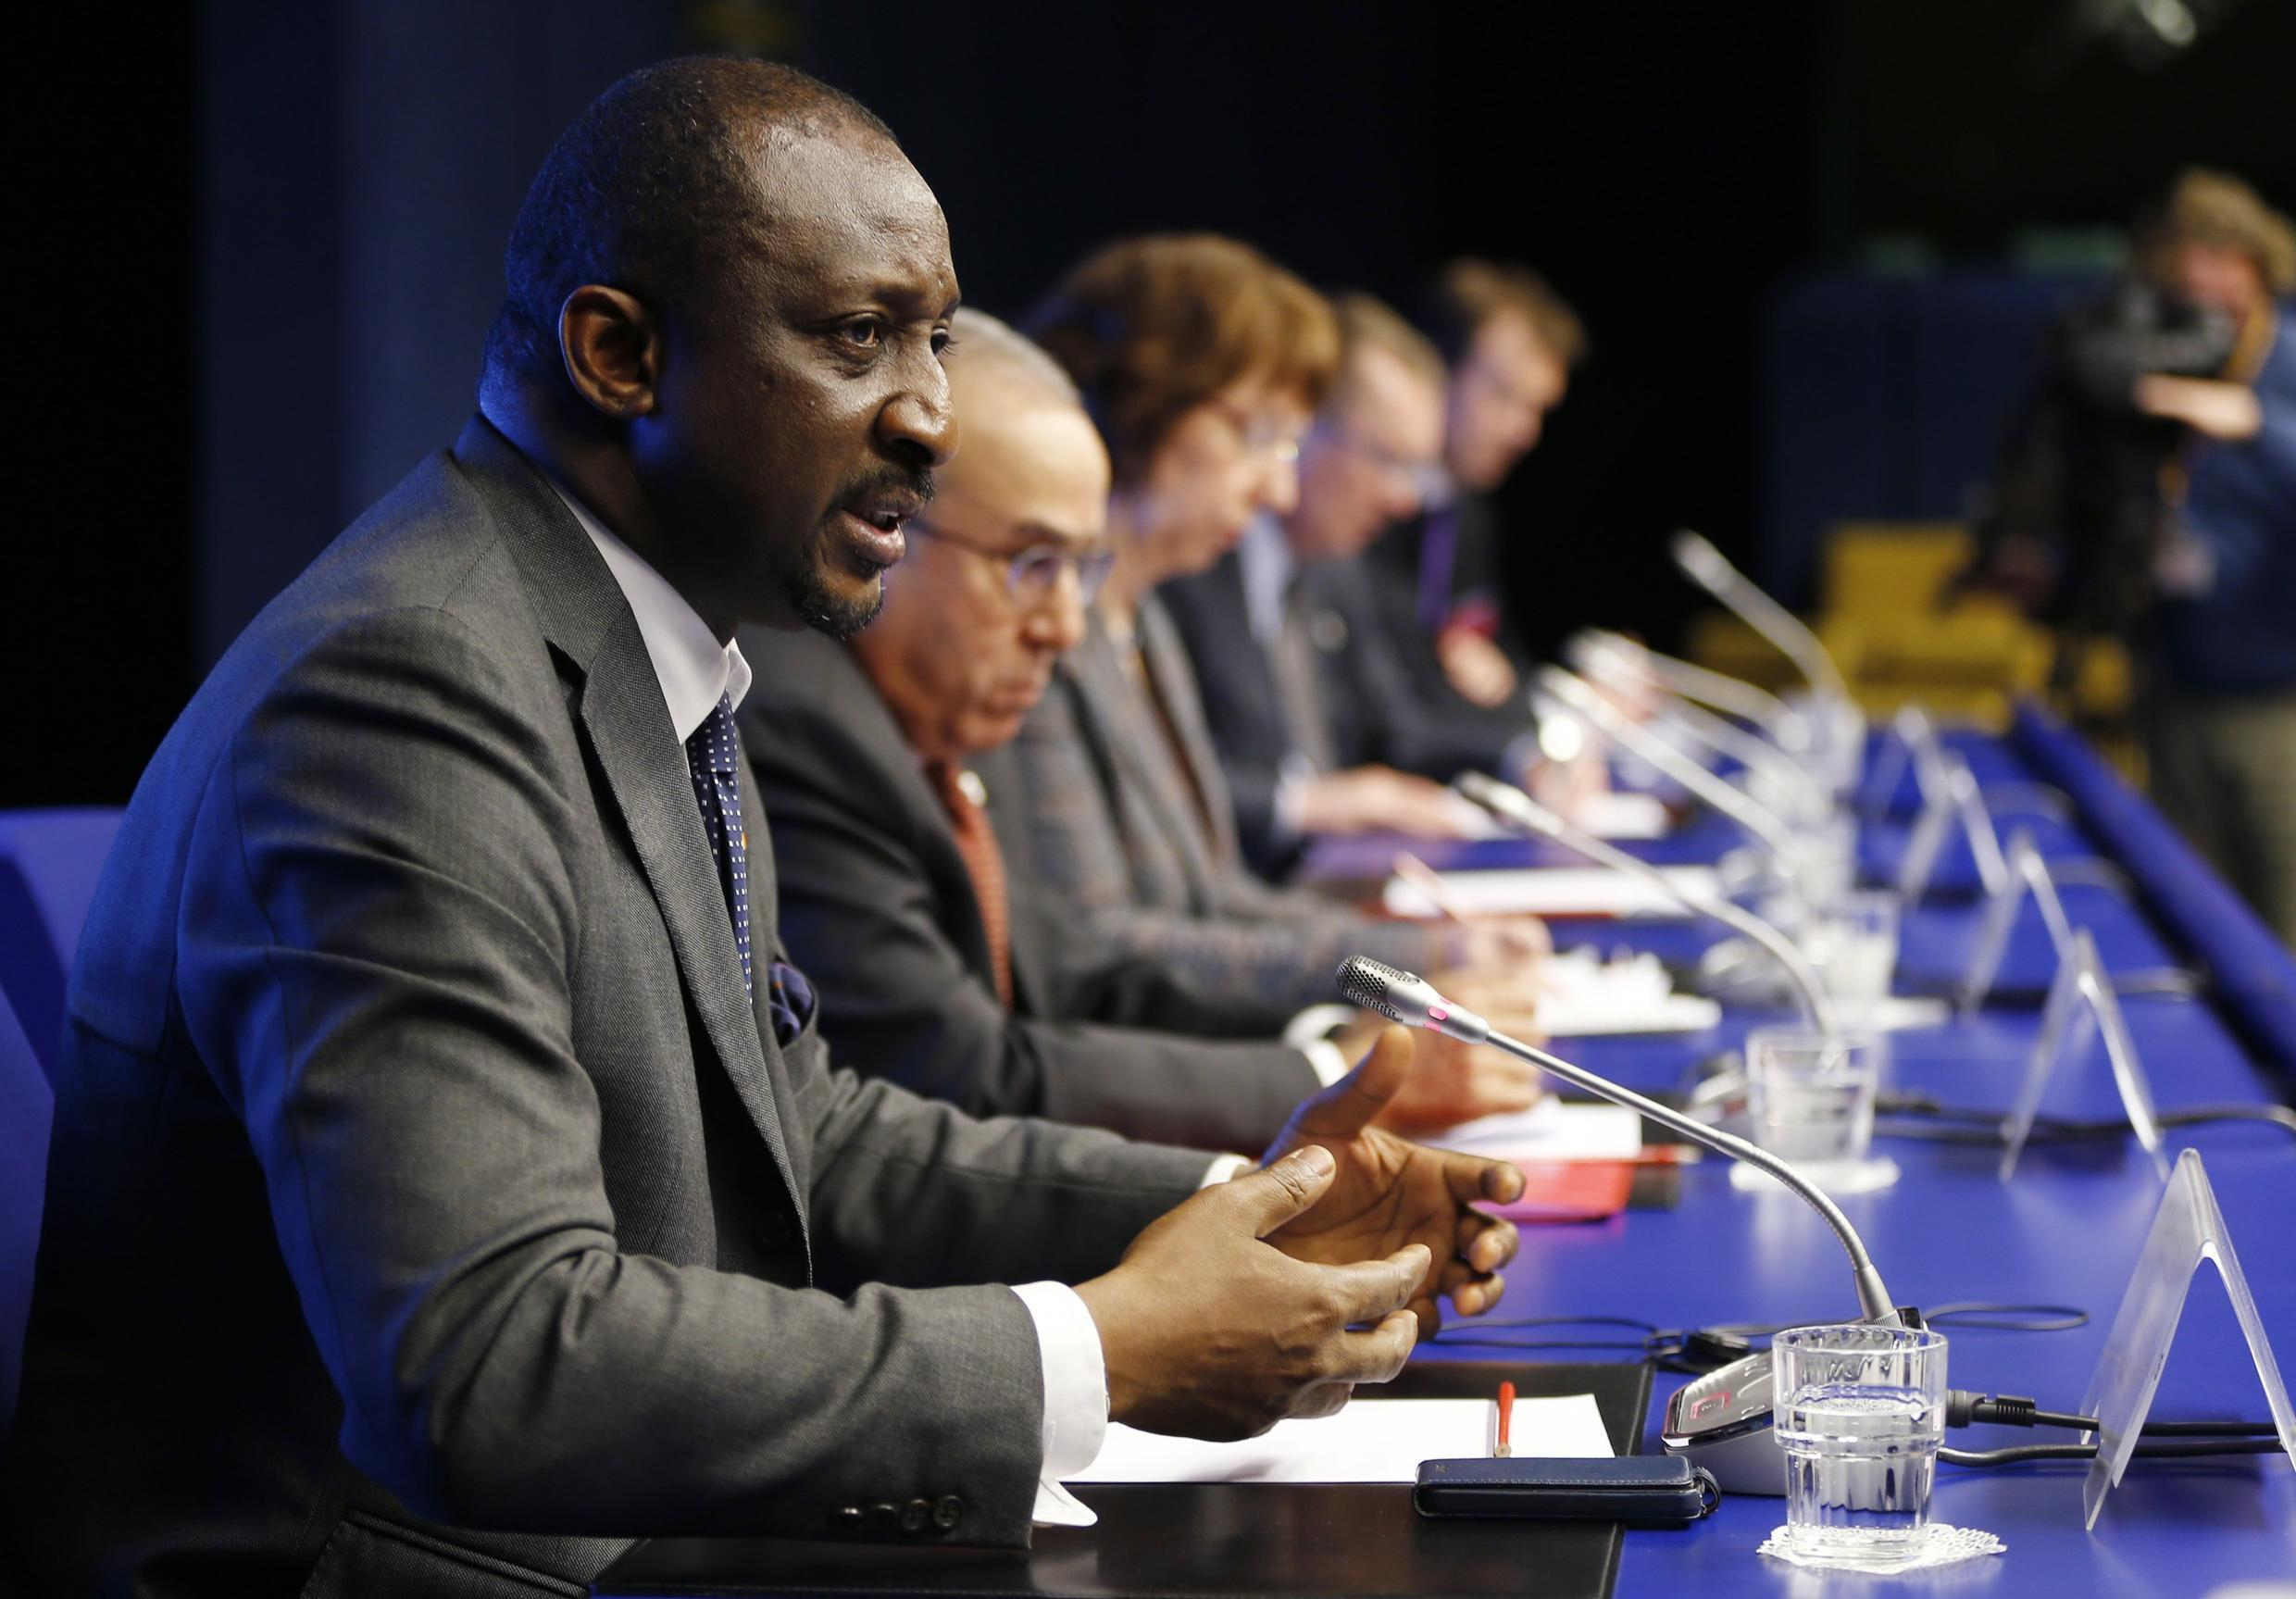 Mali's Foreign Minister Tieman Hubert Coulibaly at the EU Council in Brussels, 5 February, 2013